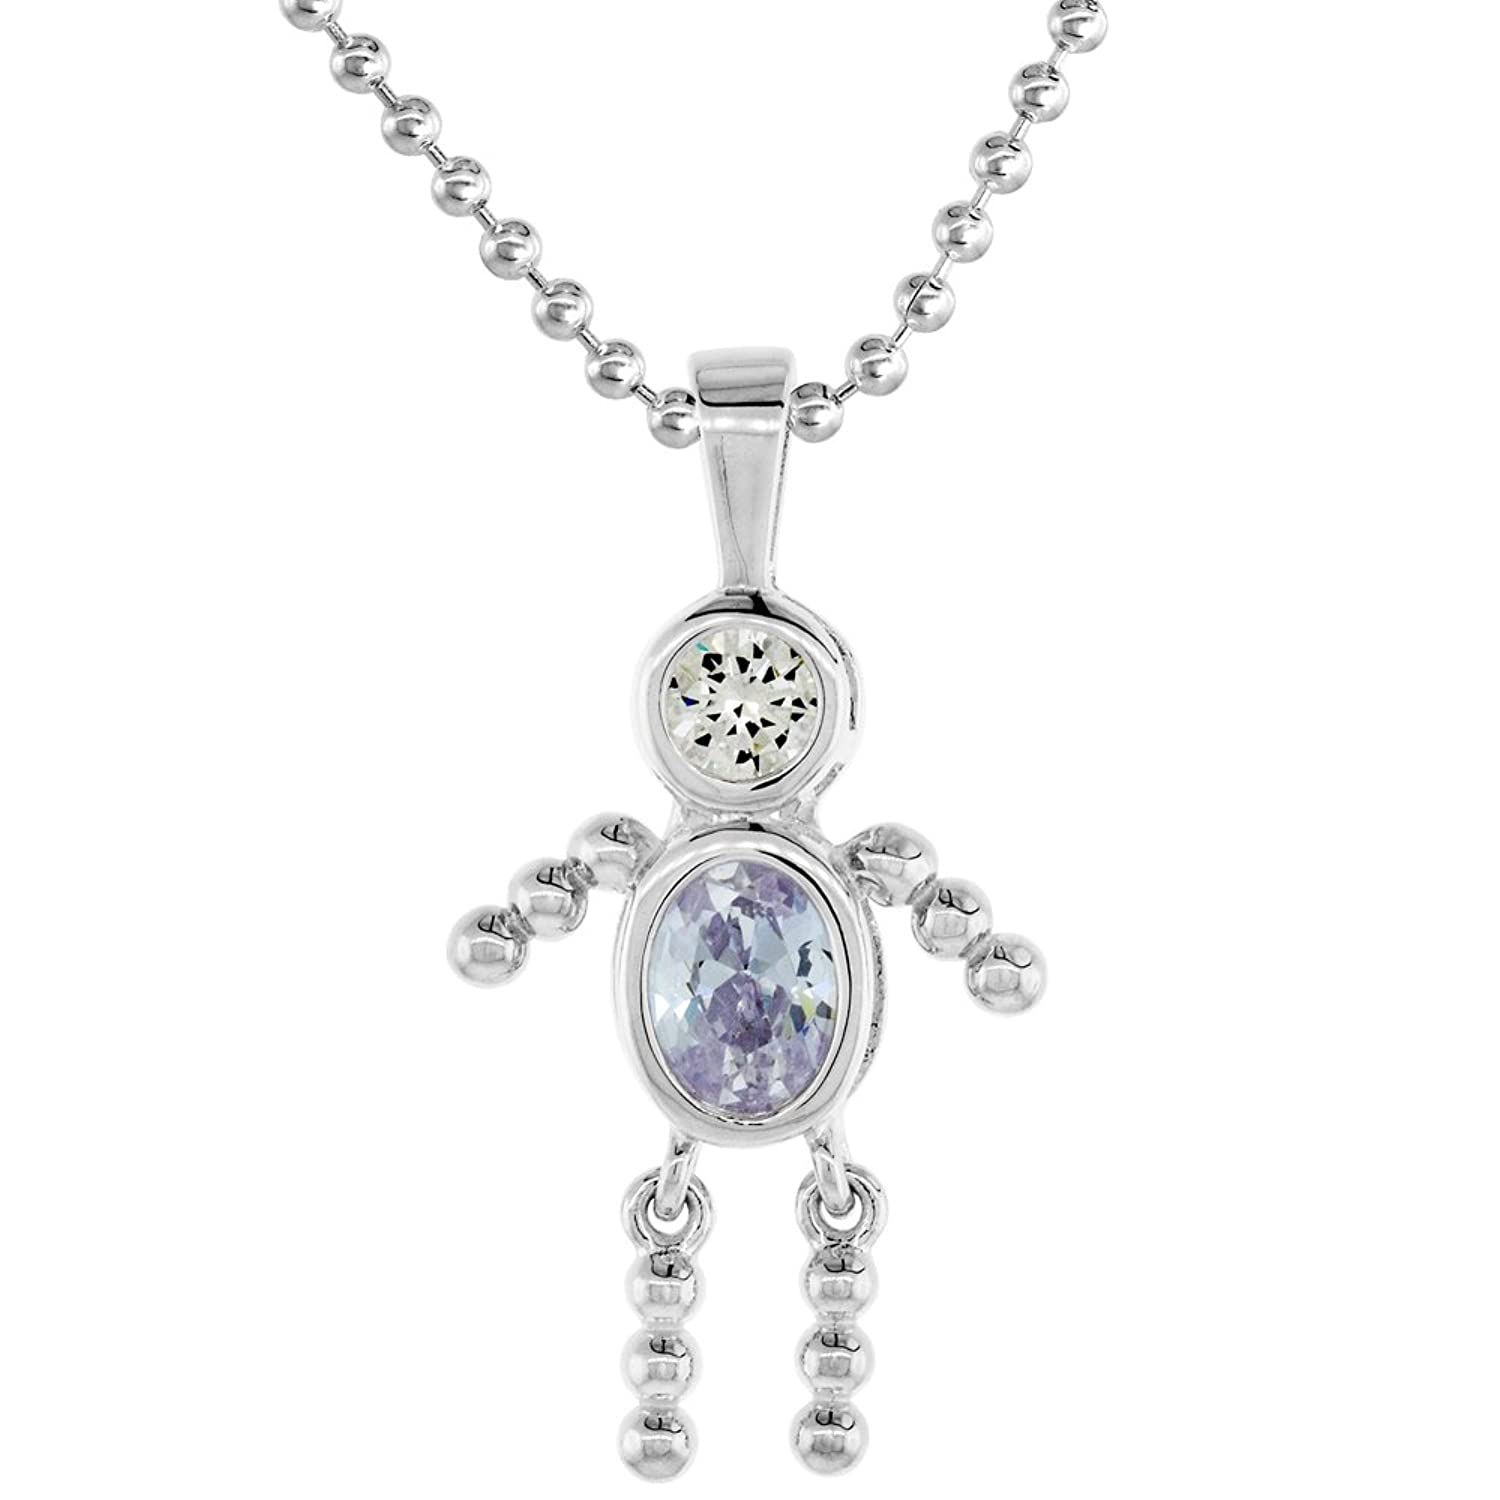 birthstone john greed old silver jewellery small cz necklace zoom women june pendant sweet version